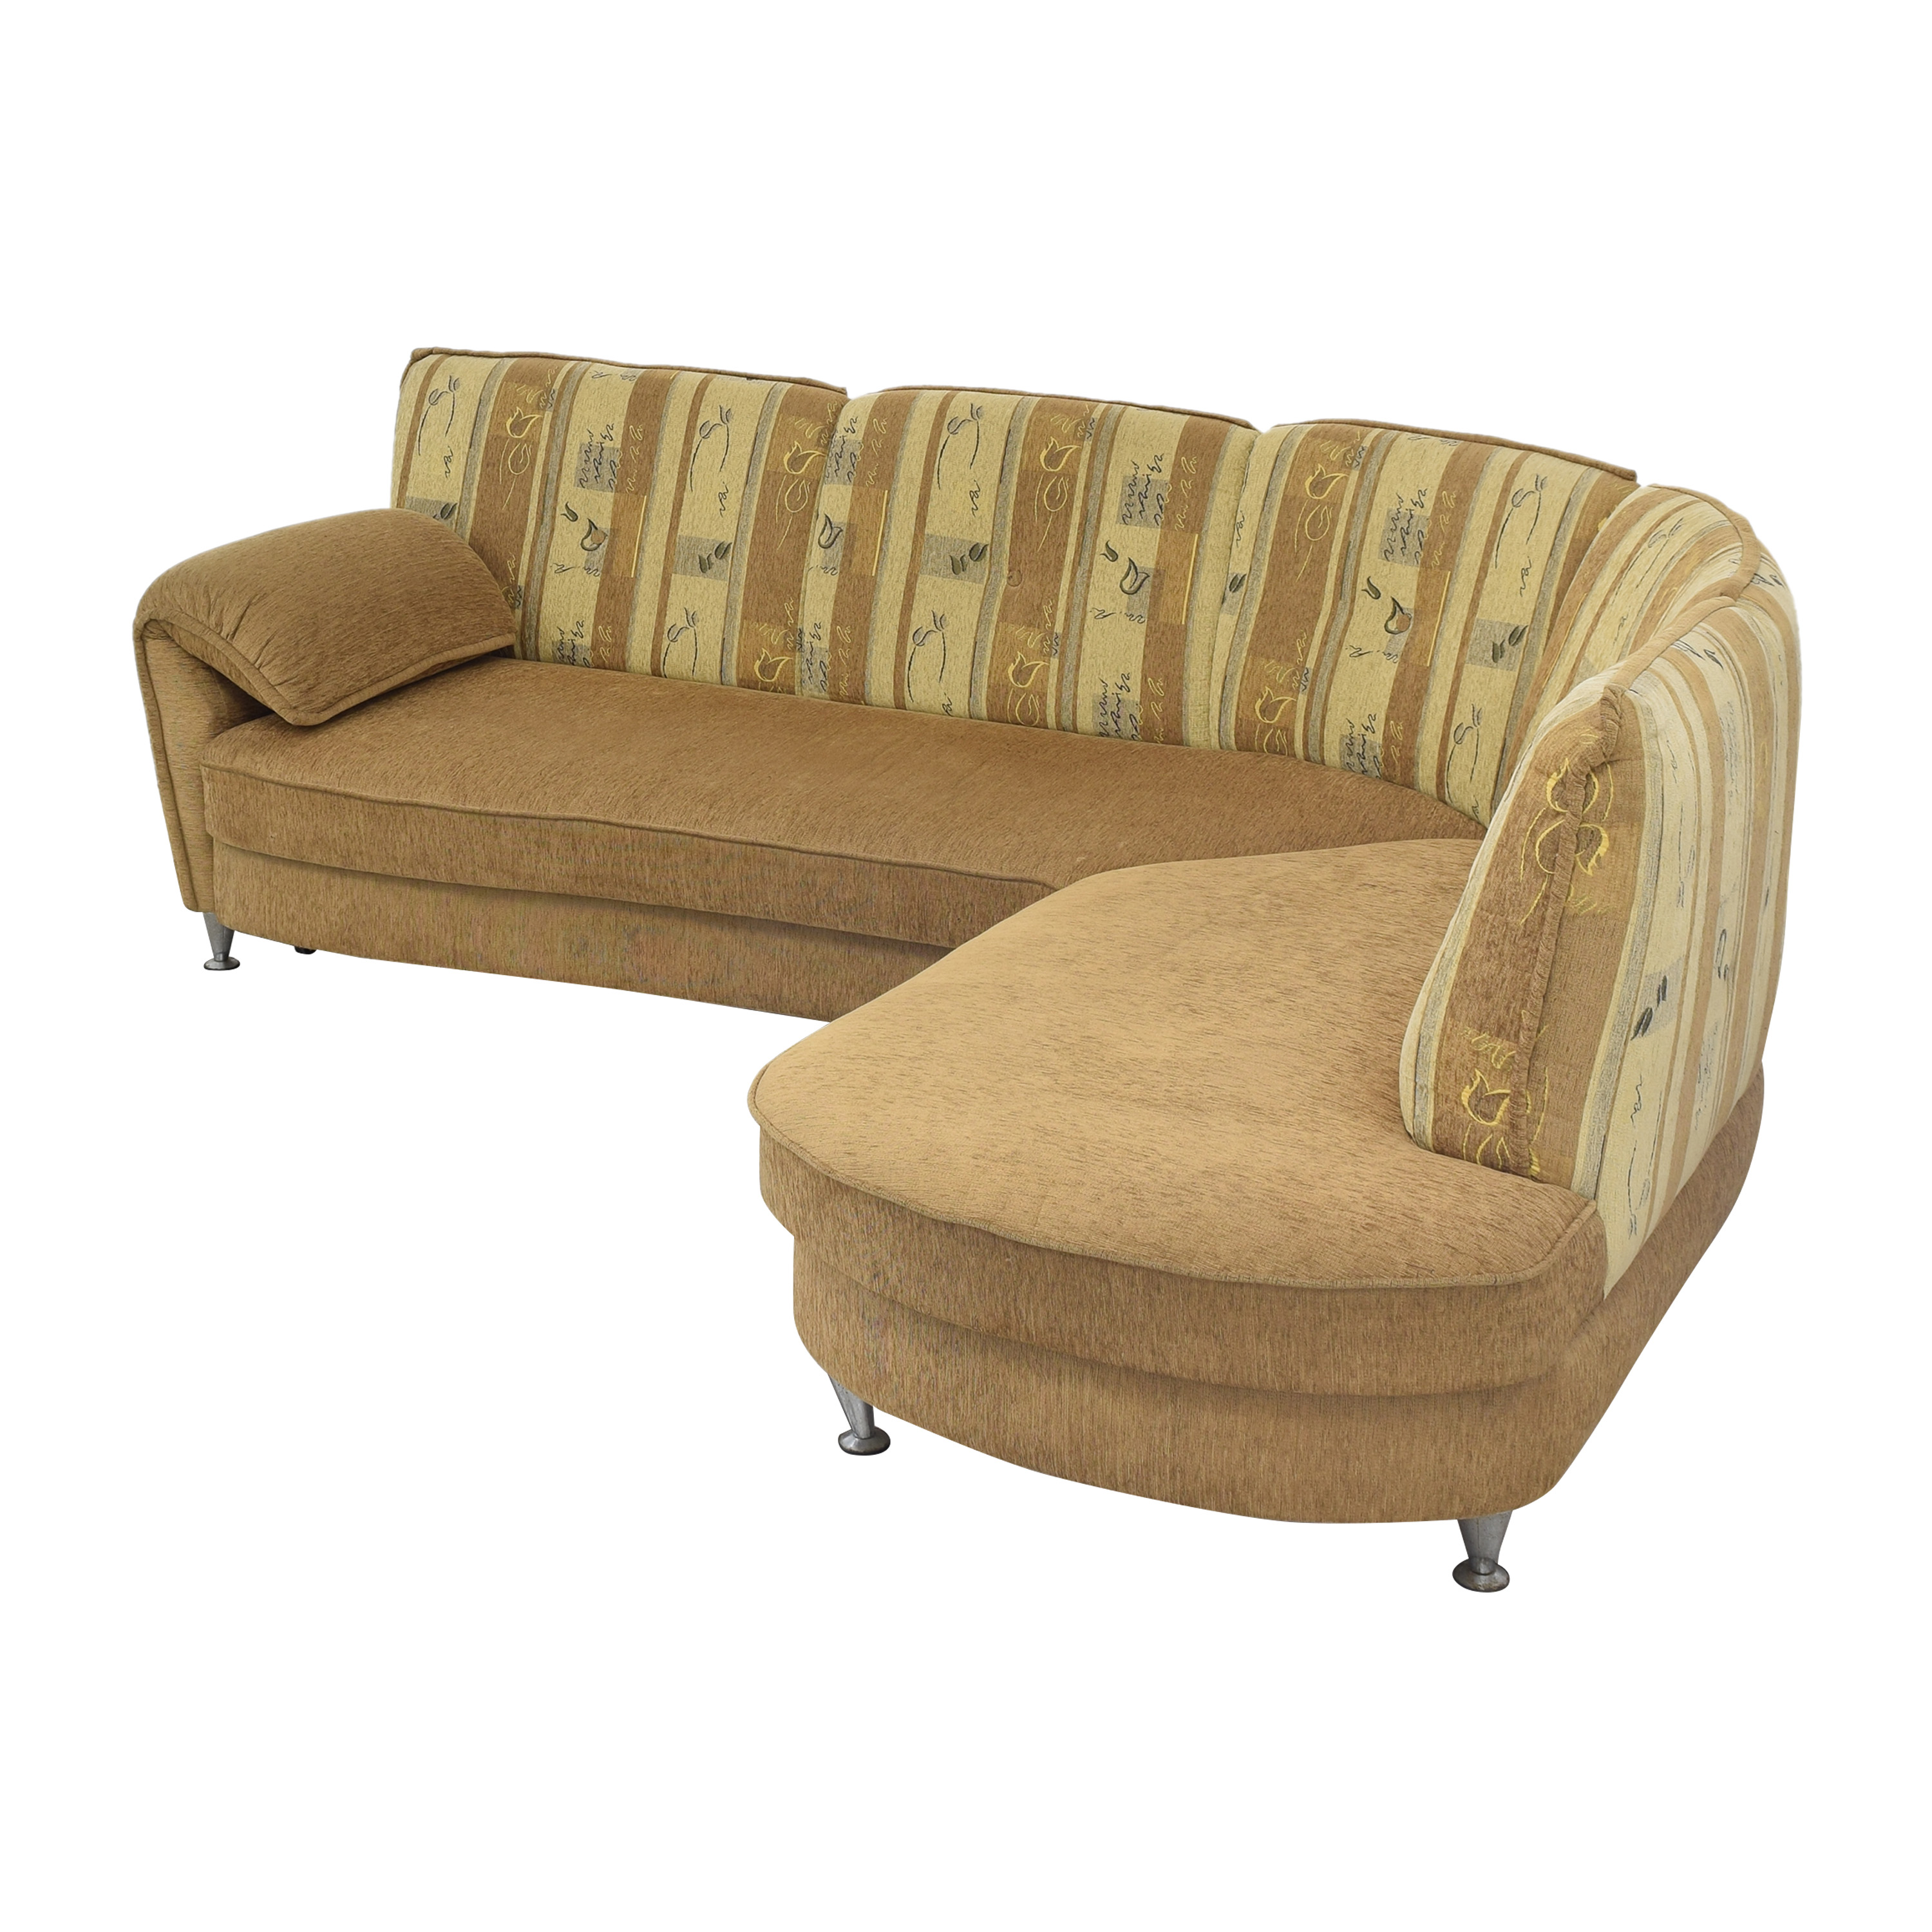 Curved Sectional Sofa with Foldout Bed sale